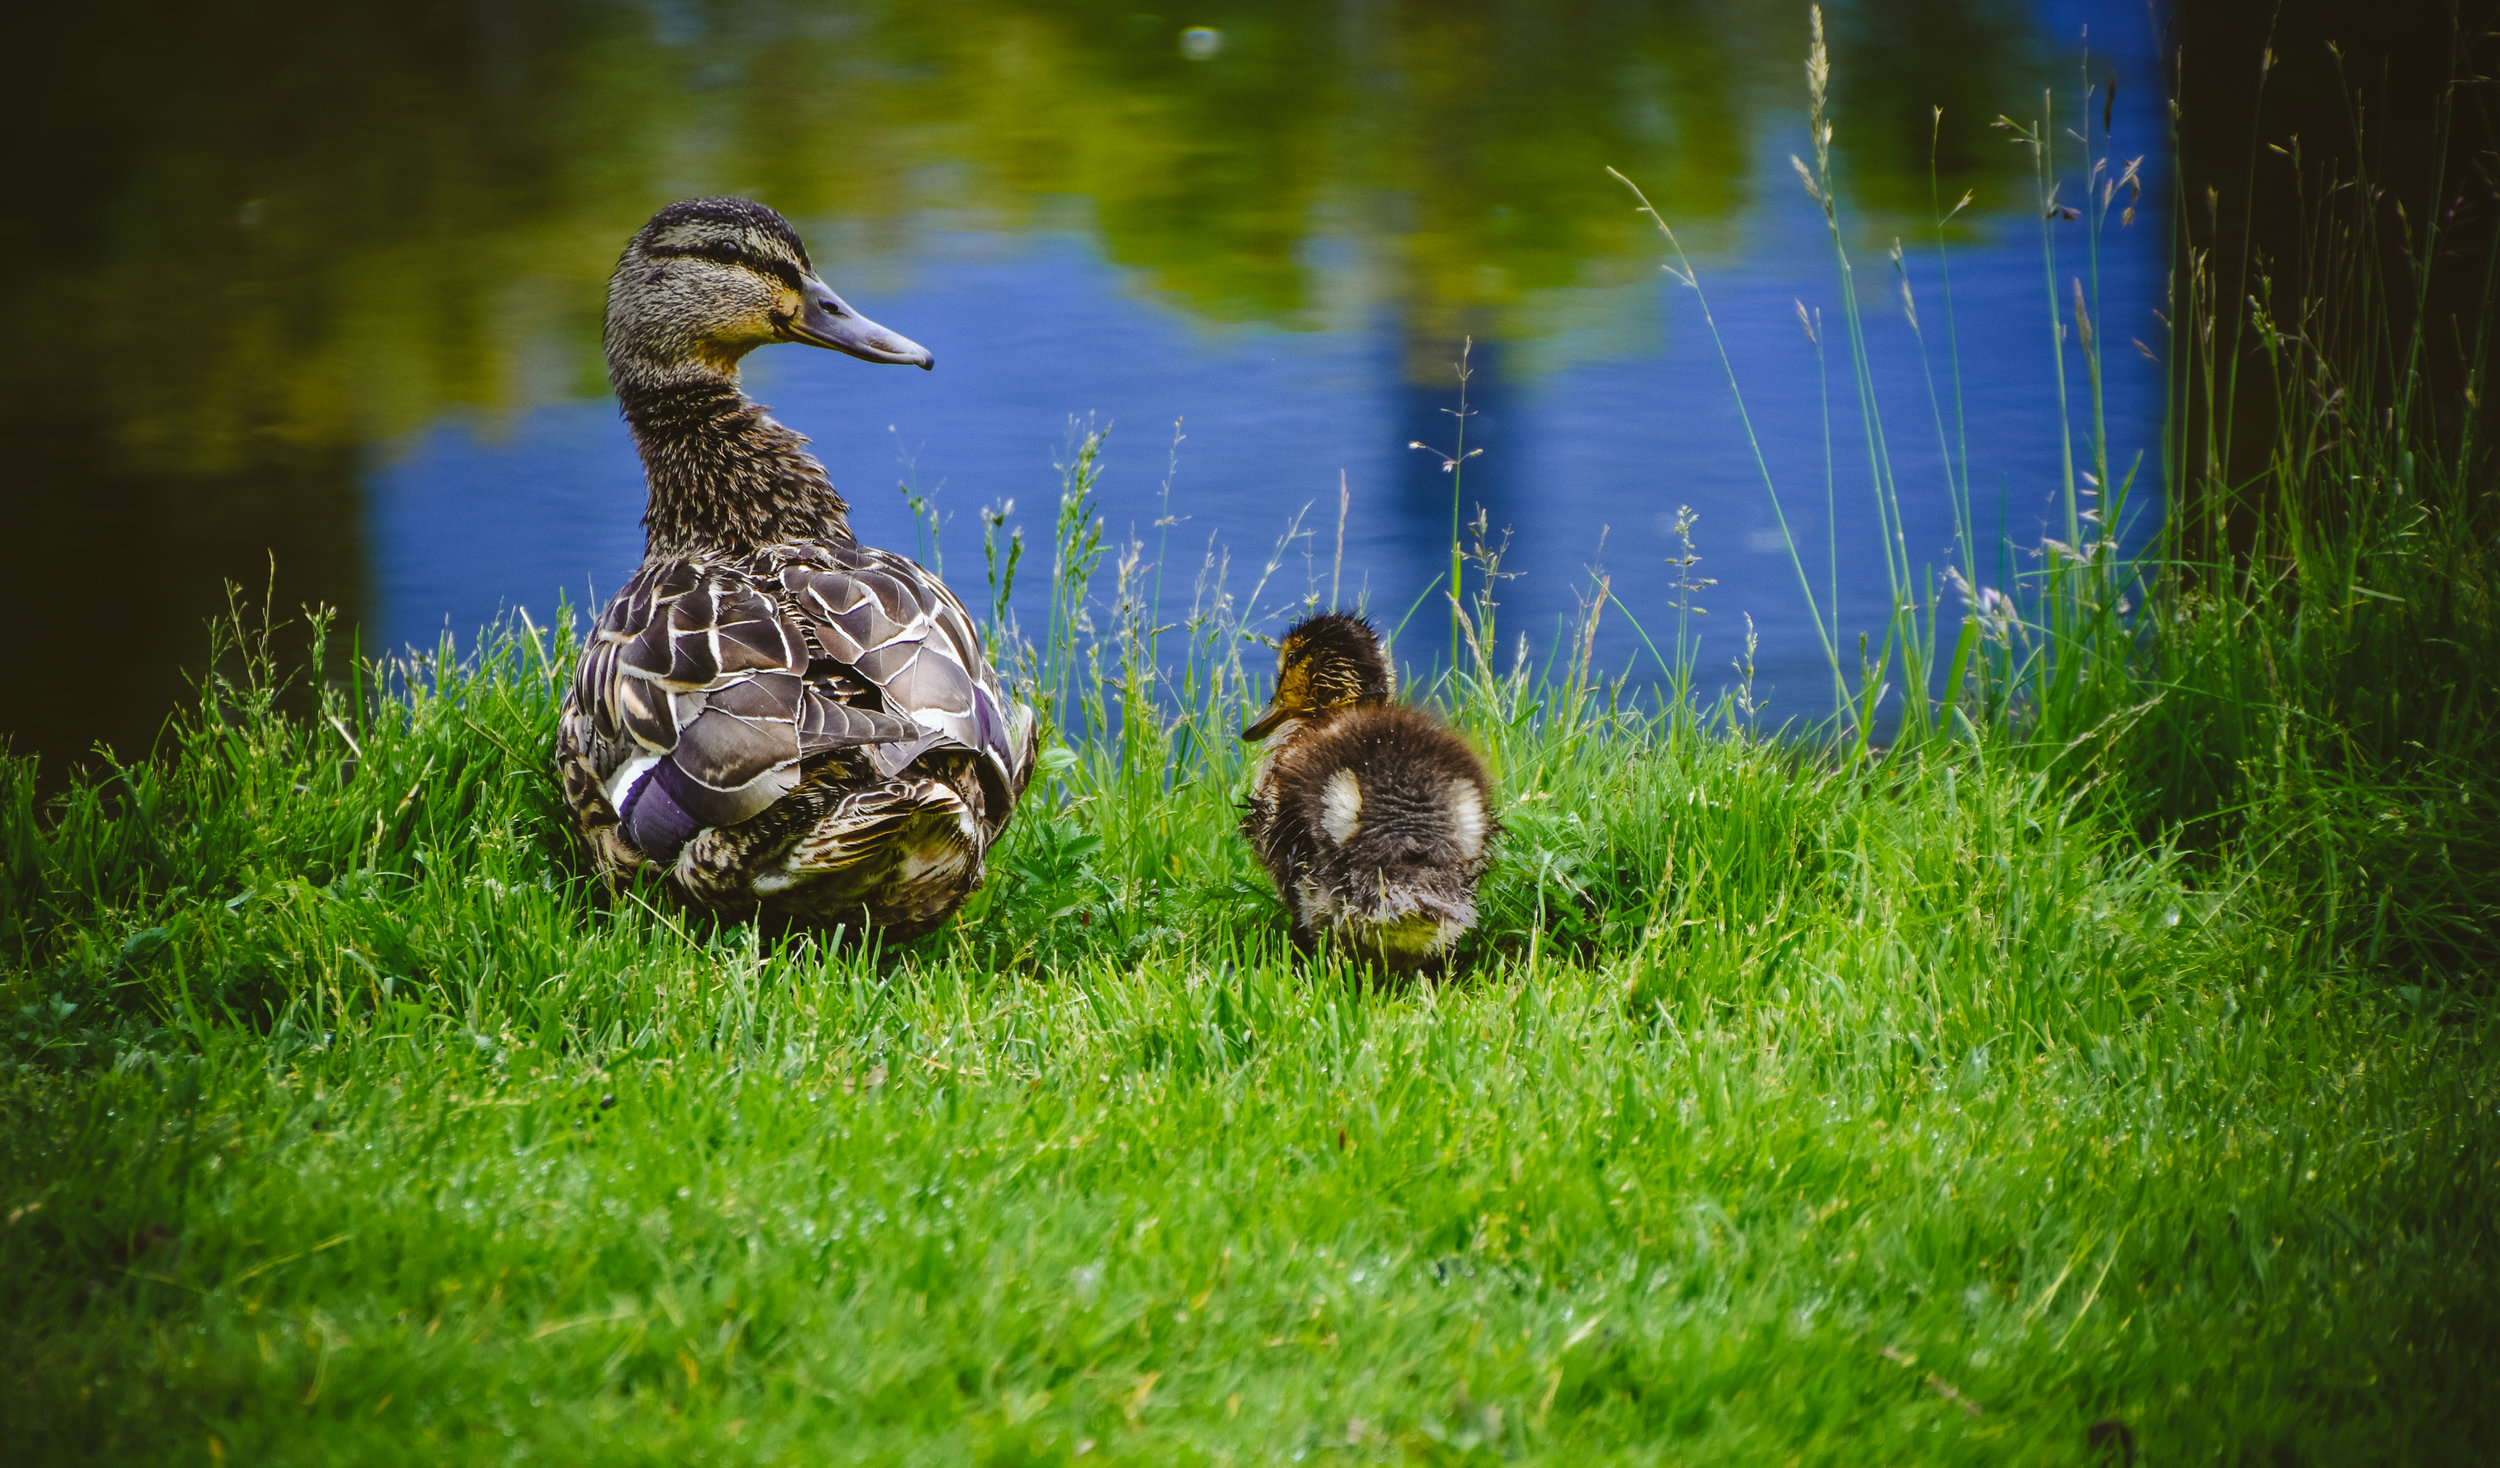 Duck and duckling at the botanic garden.